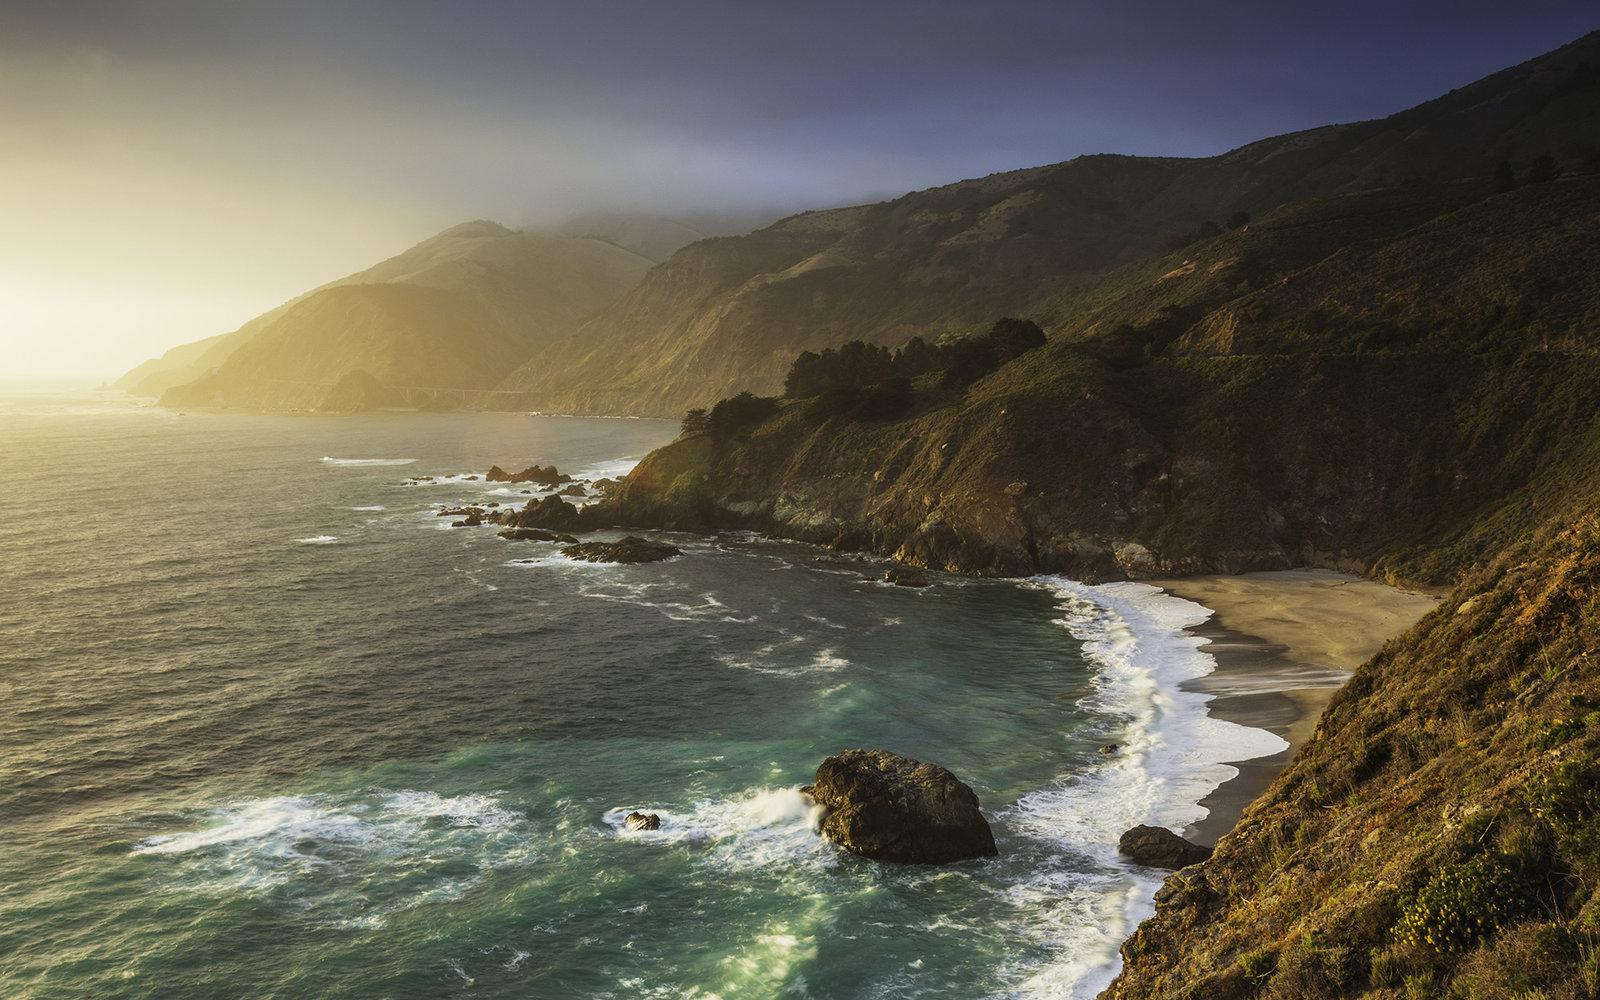 Coastline and ocean in green tones